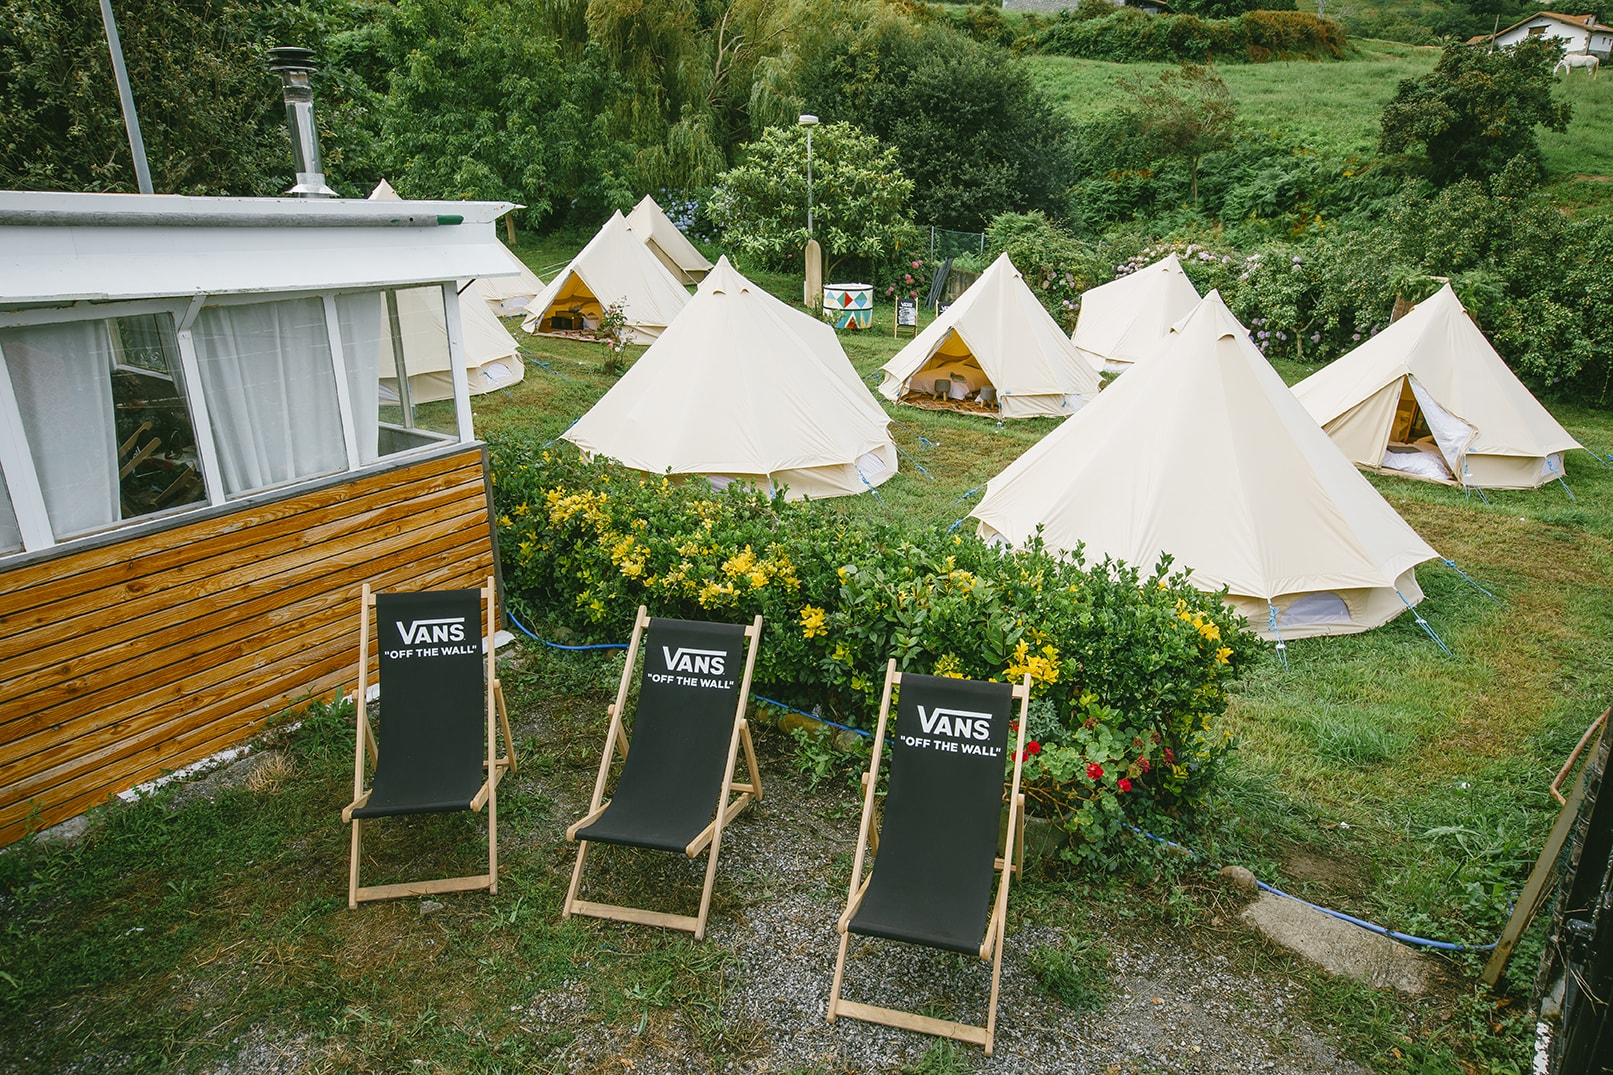 Corporate Events - If you're looking to host a corporate event in the Pays Basque, think outside the usual hotel booking and check your guests or clients into a Snazzy Camp bell tent.Or Looking for an alternative team building escape? Snazzy Camp is ready made glamping for corporations that are adventure rich but time poor.